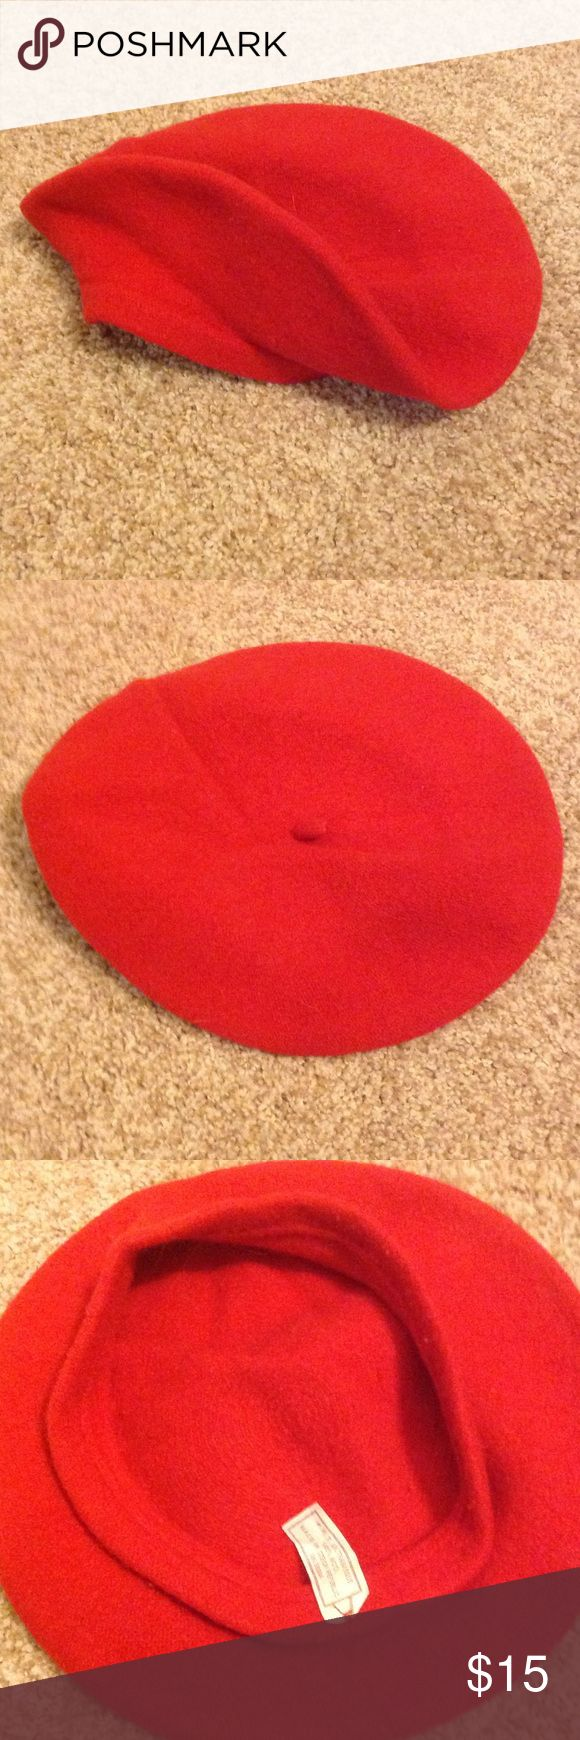 Red beret Red beret. Smoke free home. No rips stains or tears. 100% wool. Accessories Hats